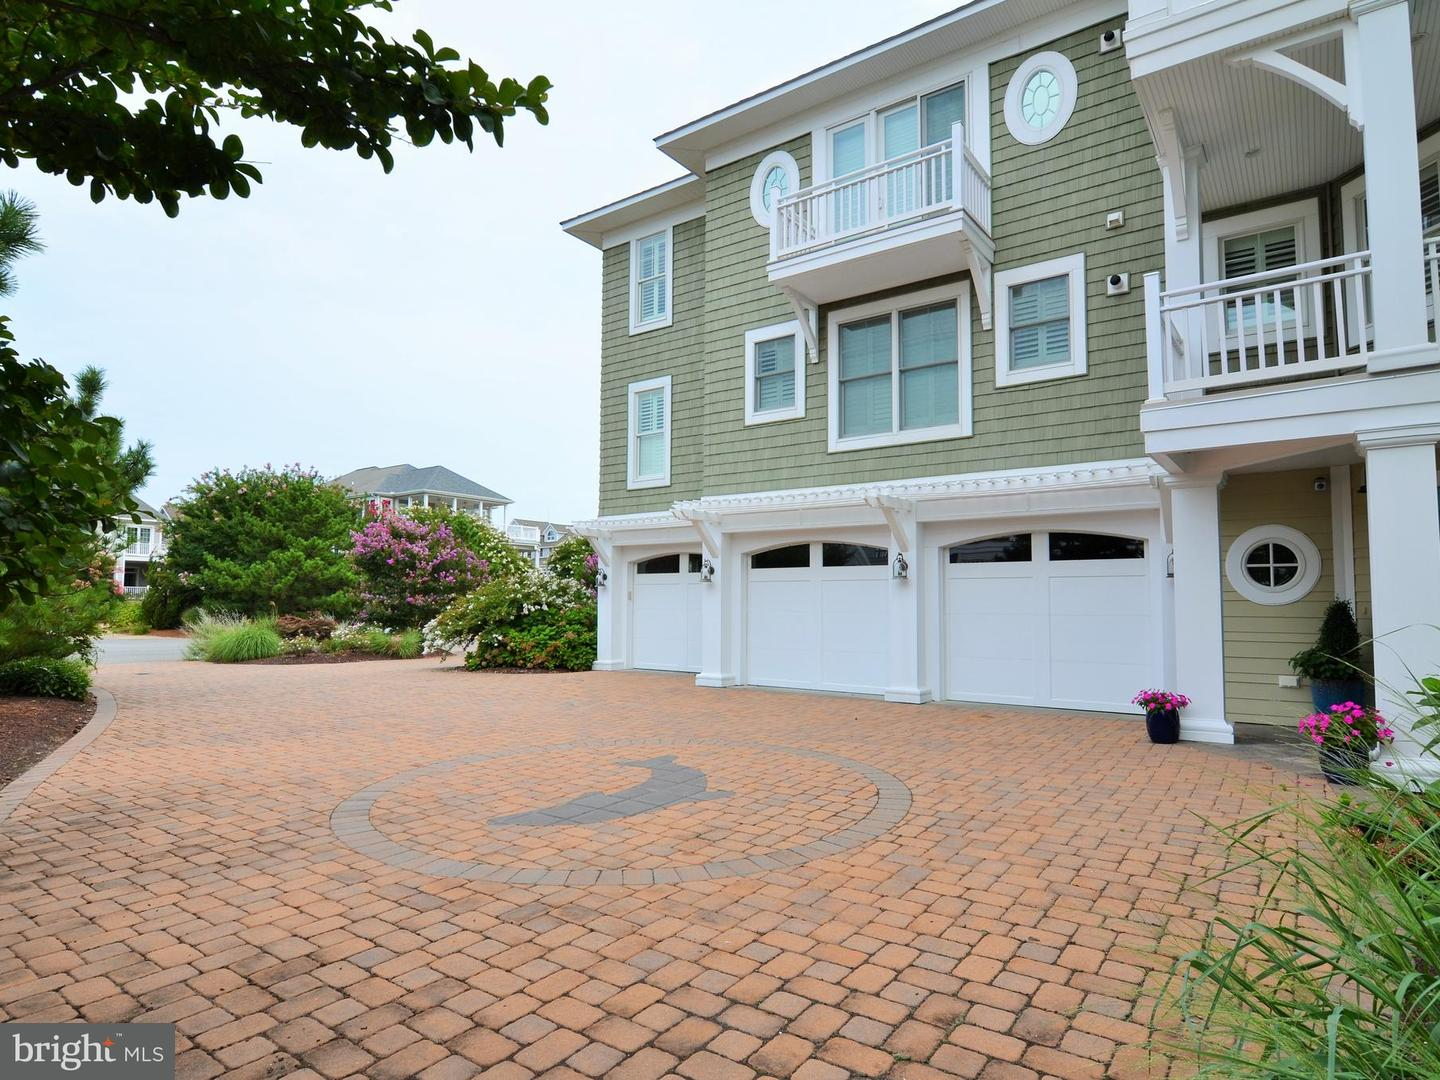 1002293530-300500805889-2018-09-25-15-08-24 31 Hall Ave | Rehoboth Beach, De Real Estate For Sale | MLS# 1002293530  - Suzanne Macnab